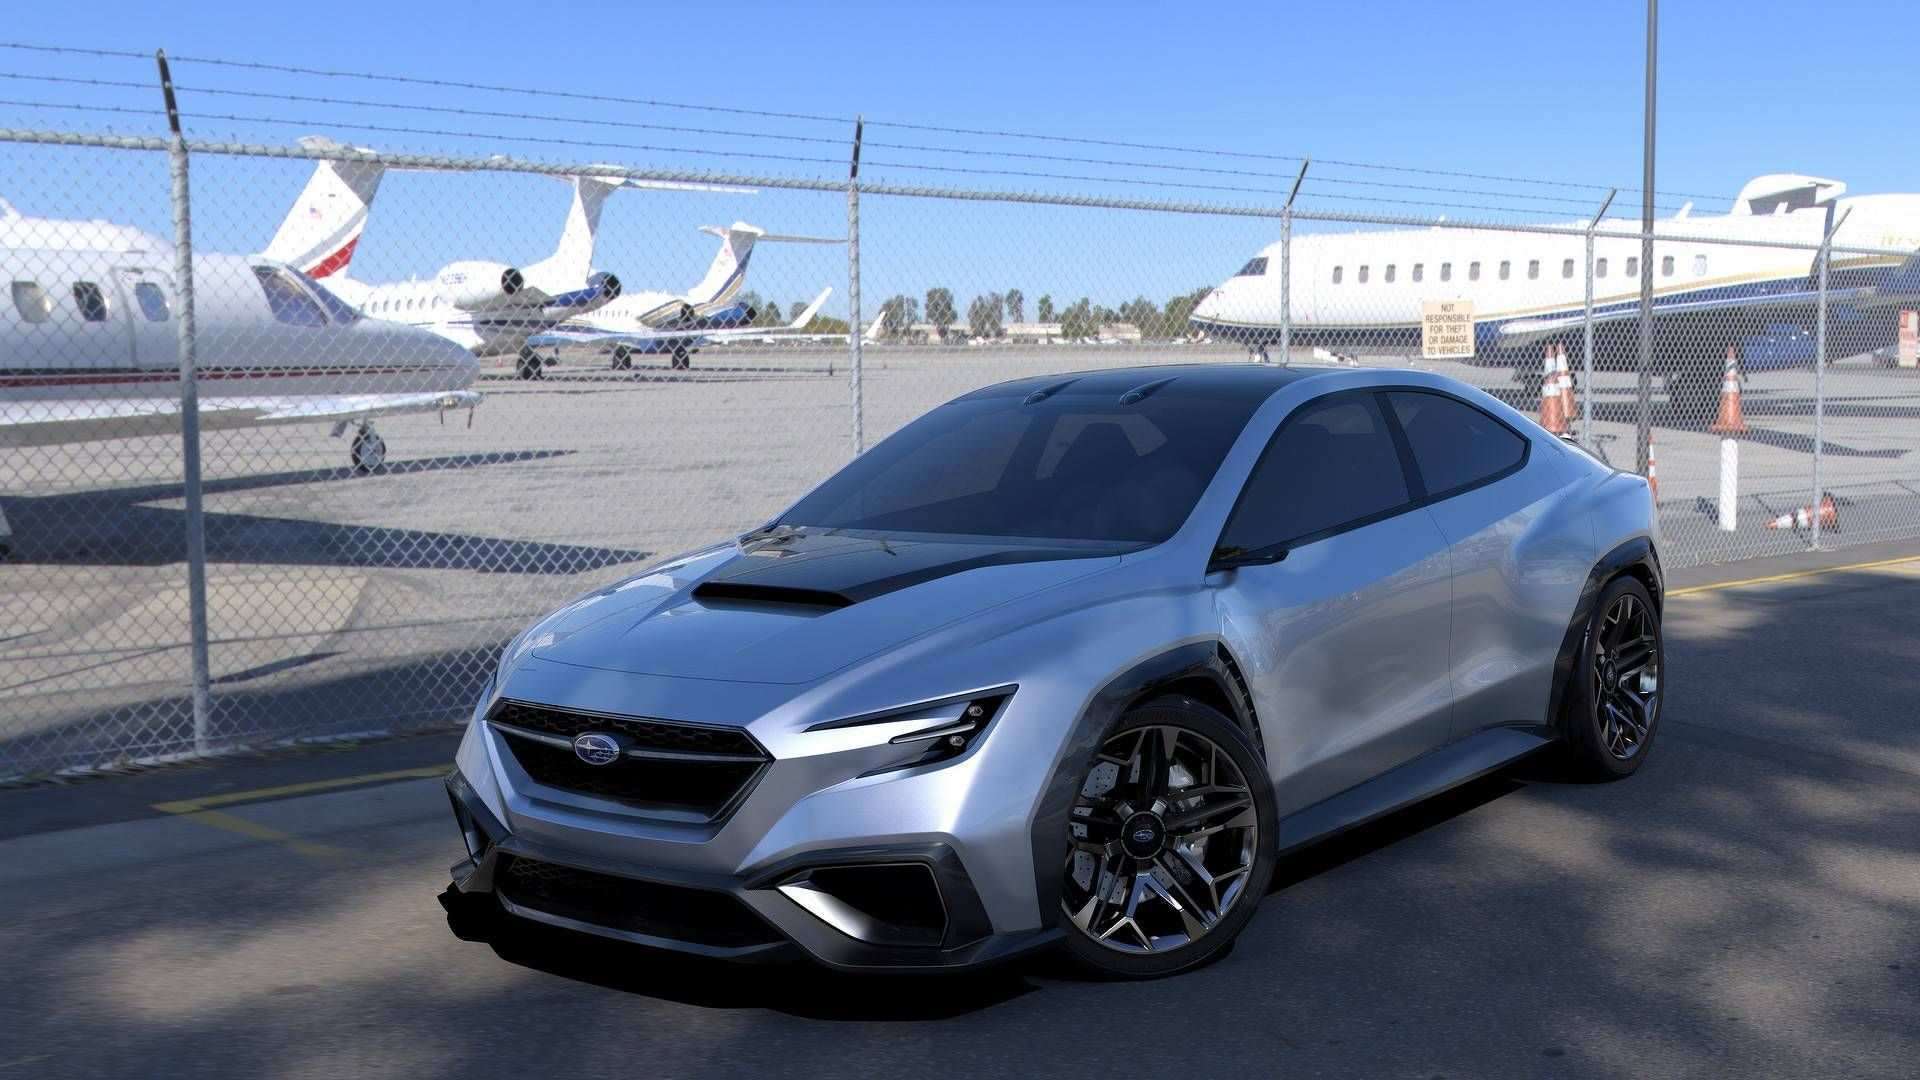 38 All New Subaru Electric Car 2019 Release Date And Concept